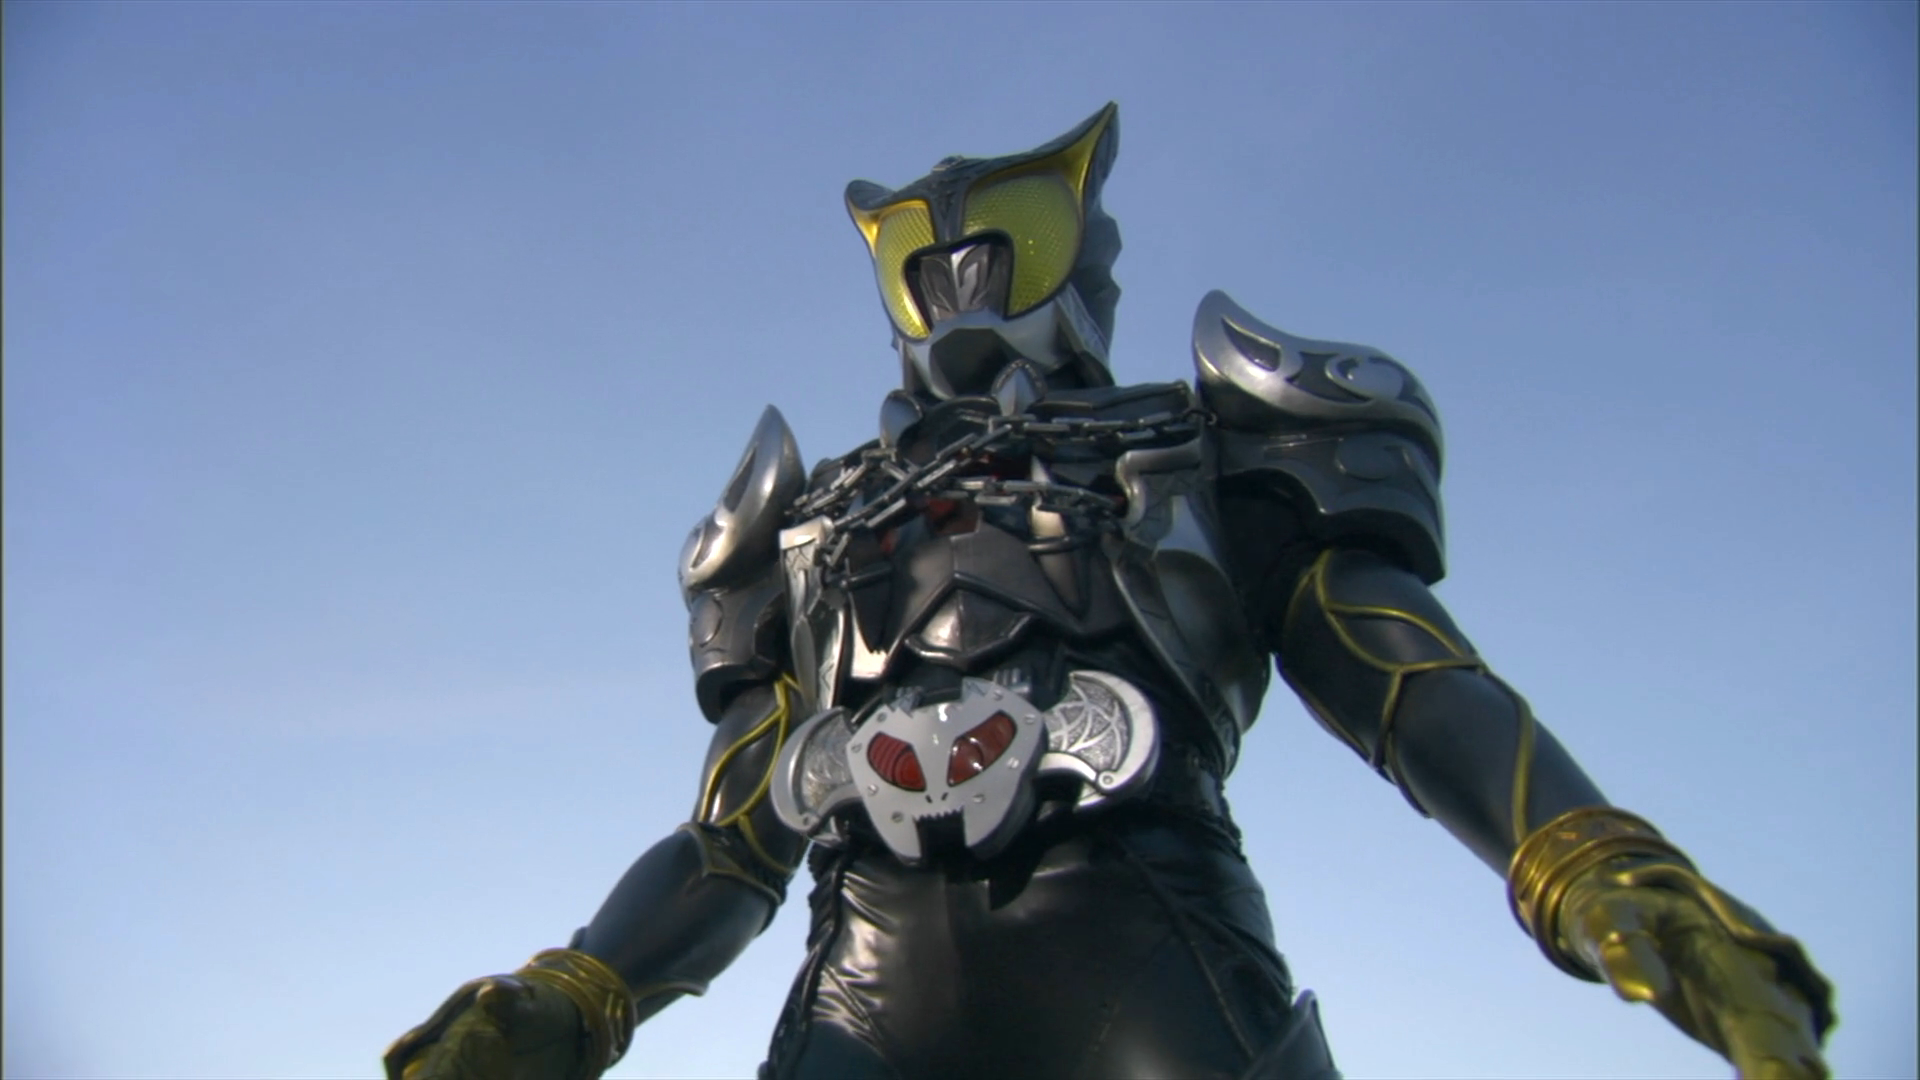 http://vignette3.wikia.nocookie.net/kamenrider/images/c/c2/Arc_in_Episode_Yellow.png/revision/latest?cb=20140419084141